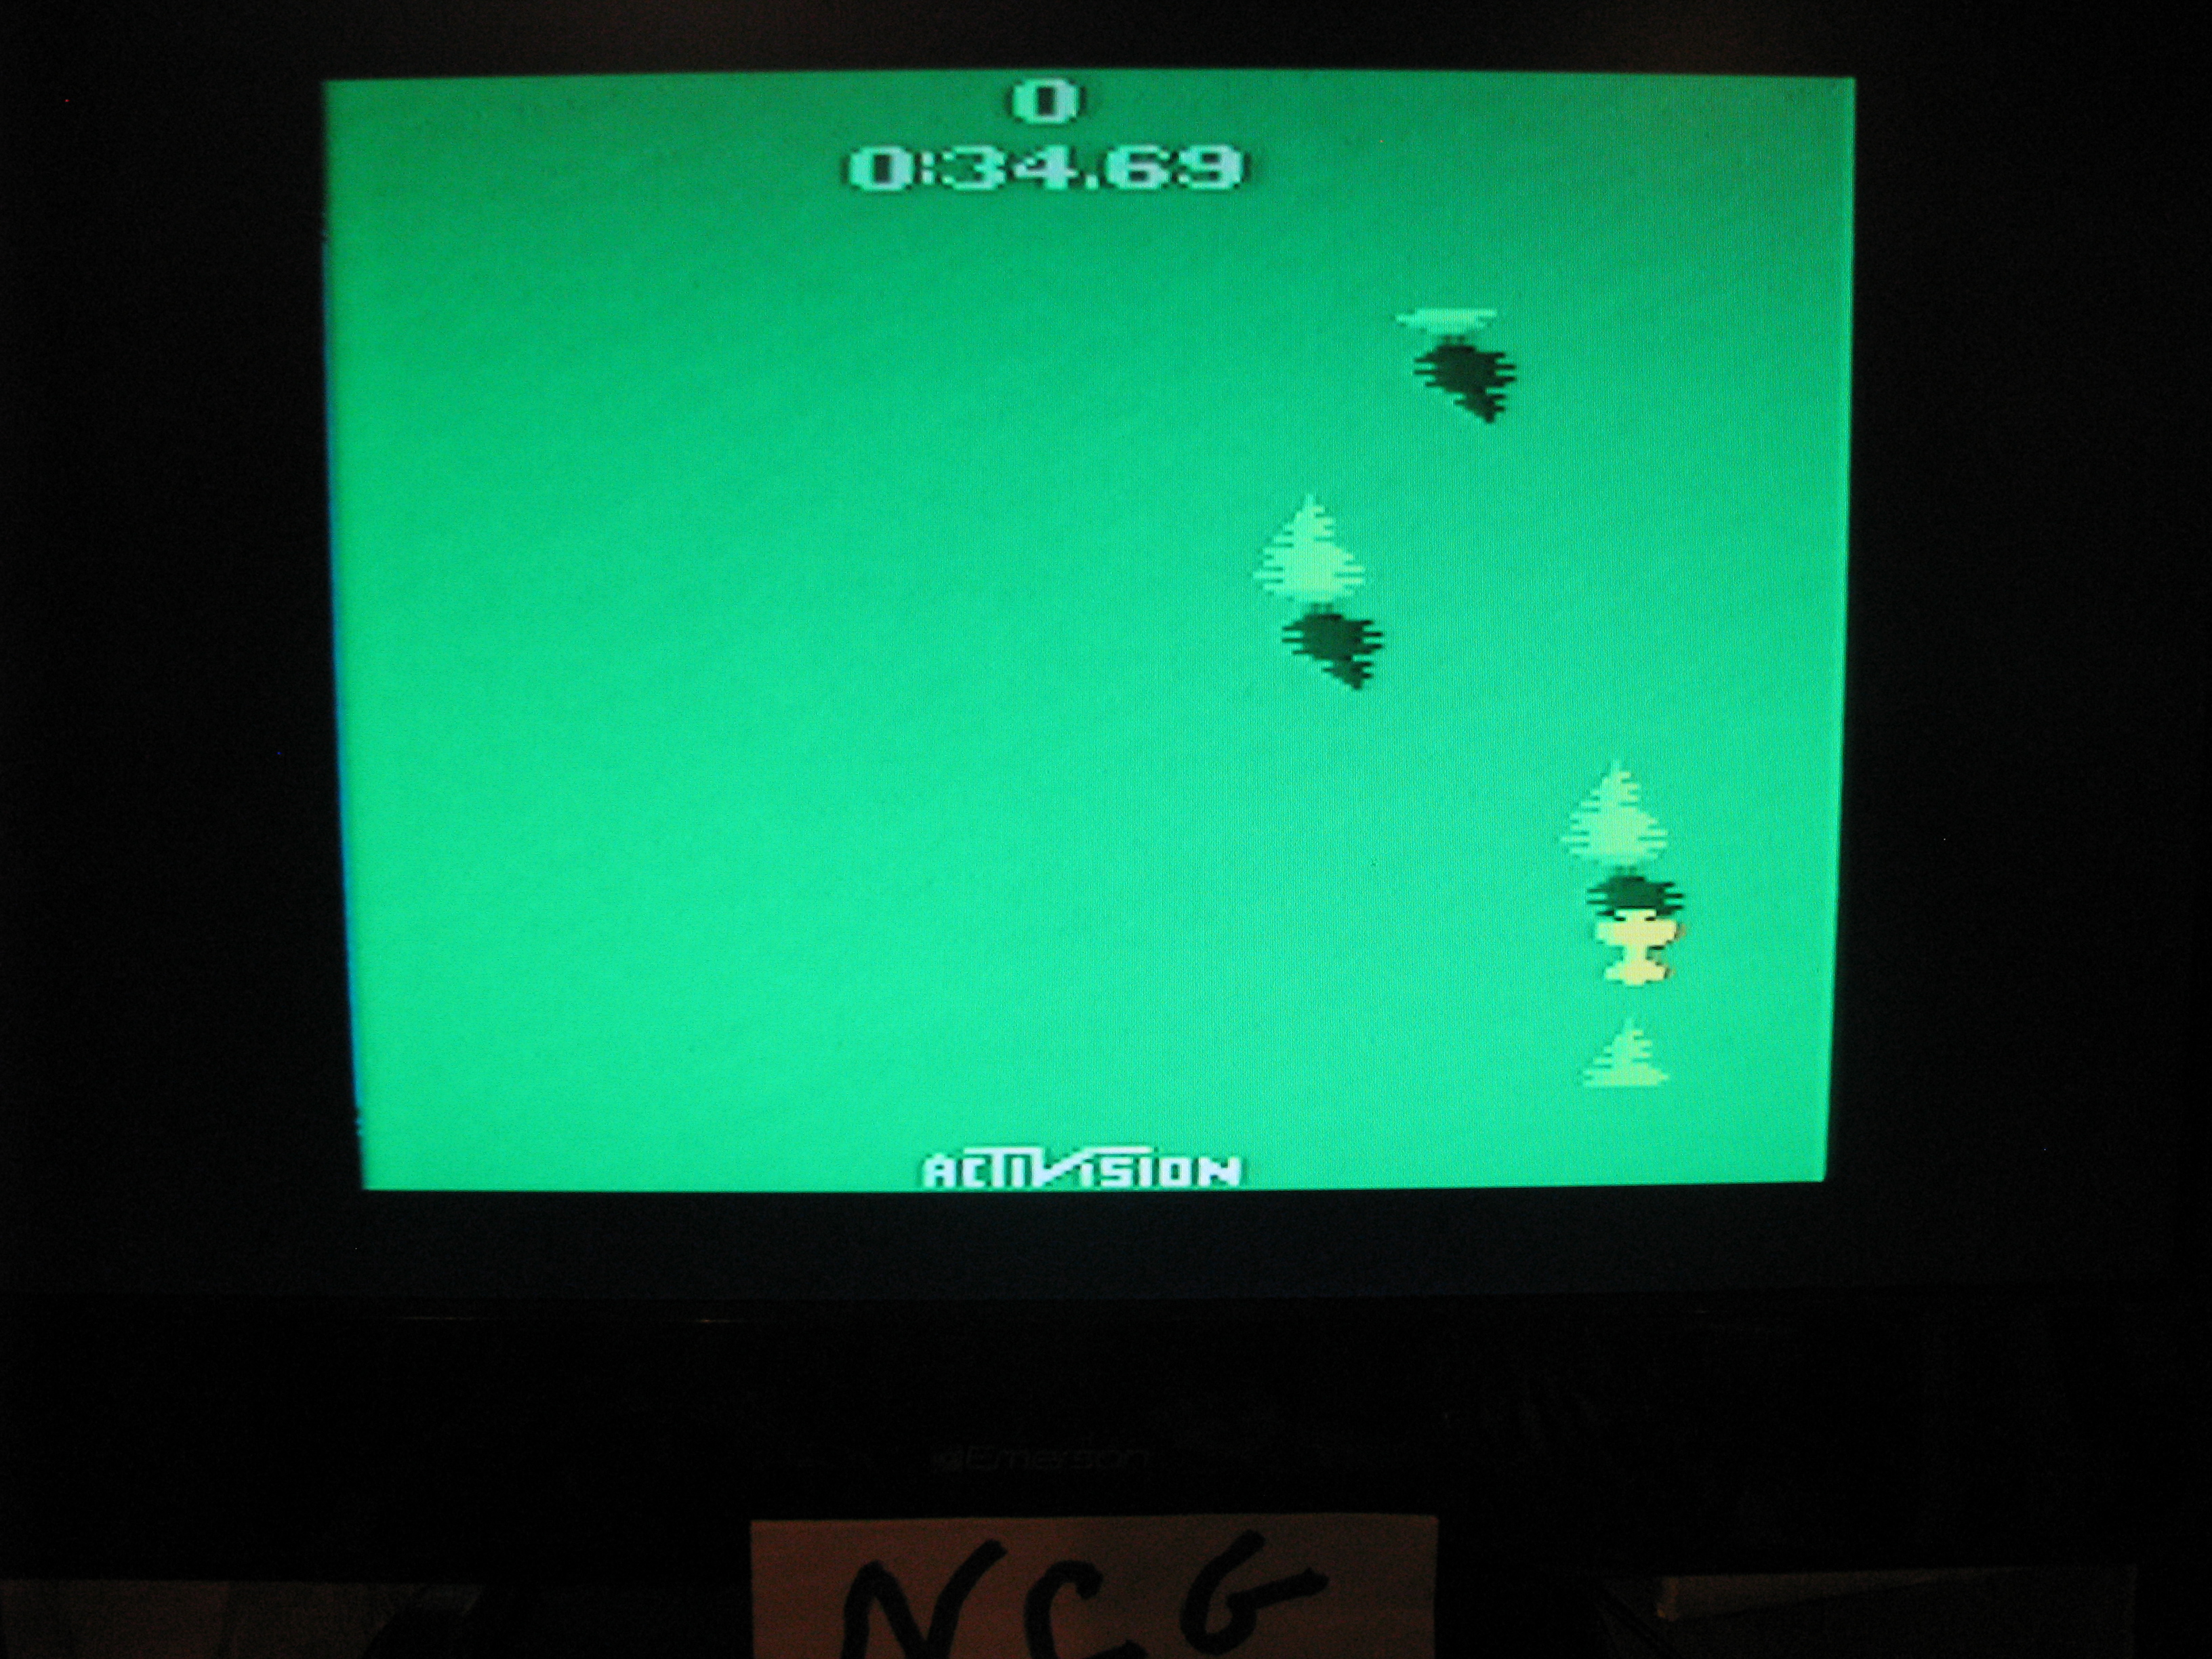 NorthCoastGamer: Sky Jinks (Atari 2600 Novice/B) 0:00:34.69 points on 2015-03-13 18:12:40